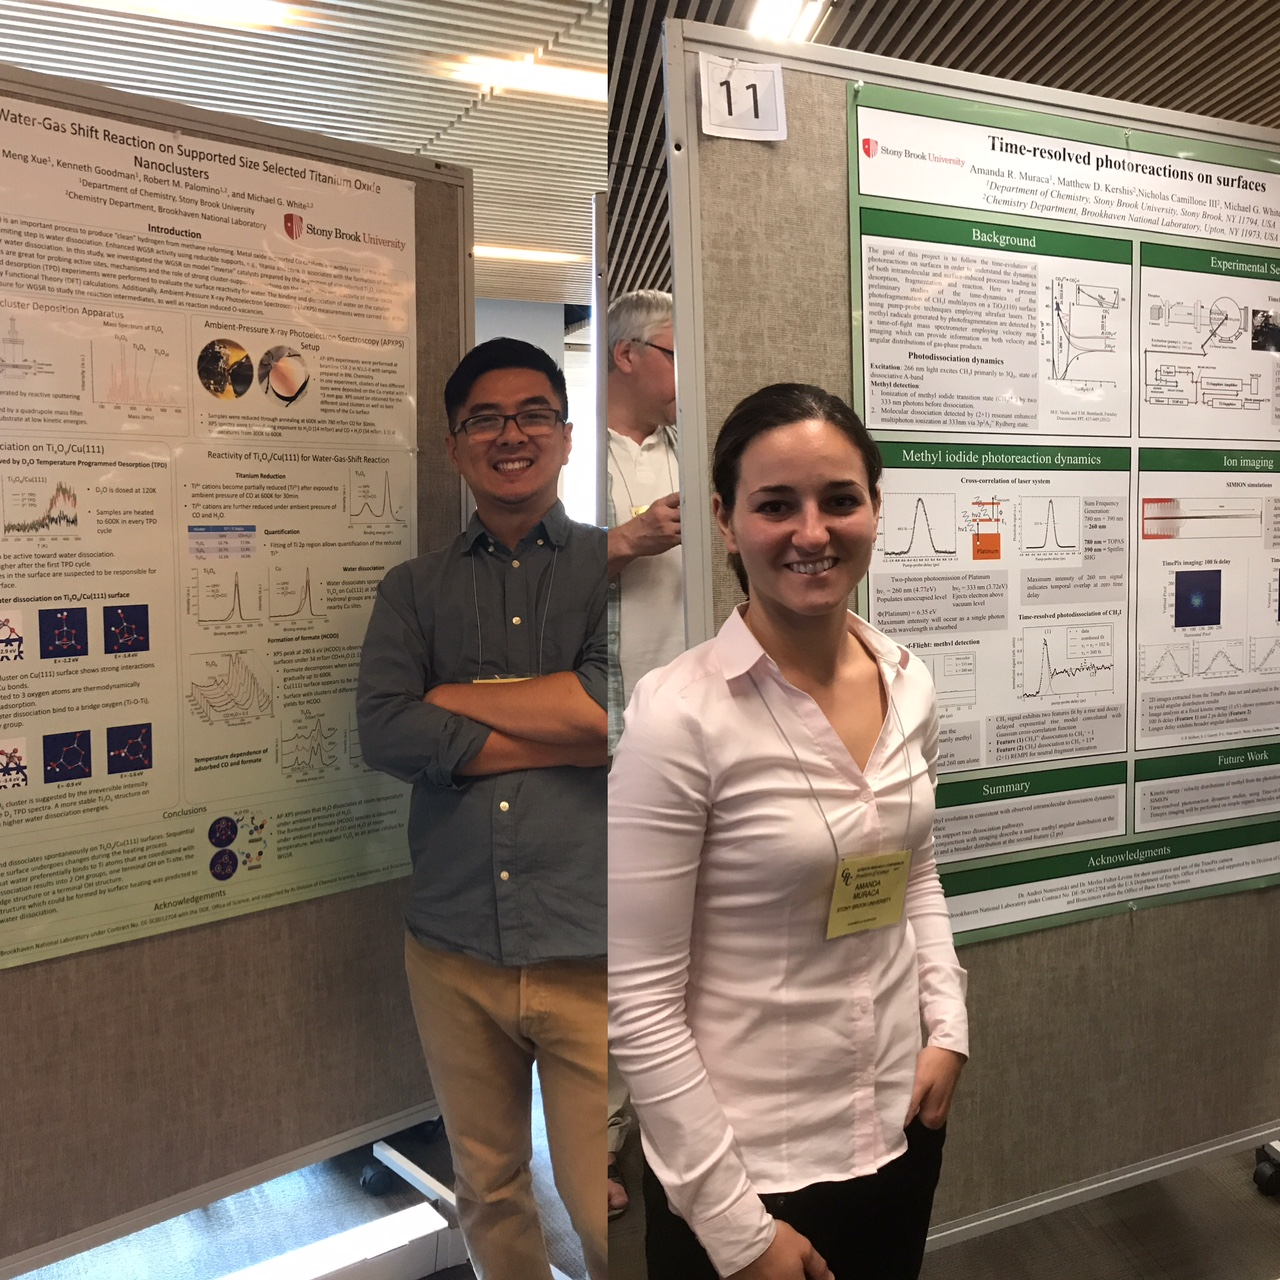 07/29/2017 - Meng and Amanda attended the Gordon Research Conference on Dynamics at Surfaces: Fundamentals of Chemical and Physical Change at Surfaces and Interfaces. This took place at Salve Reina University located in Newport, Rhode Island.